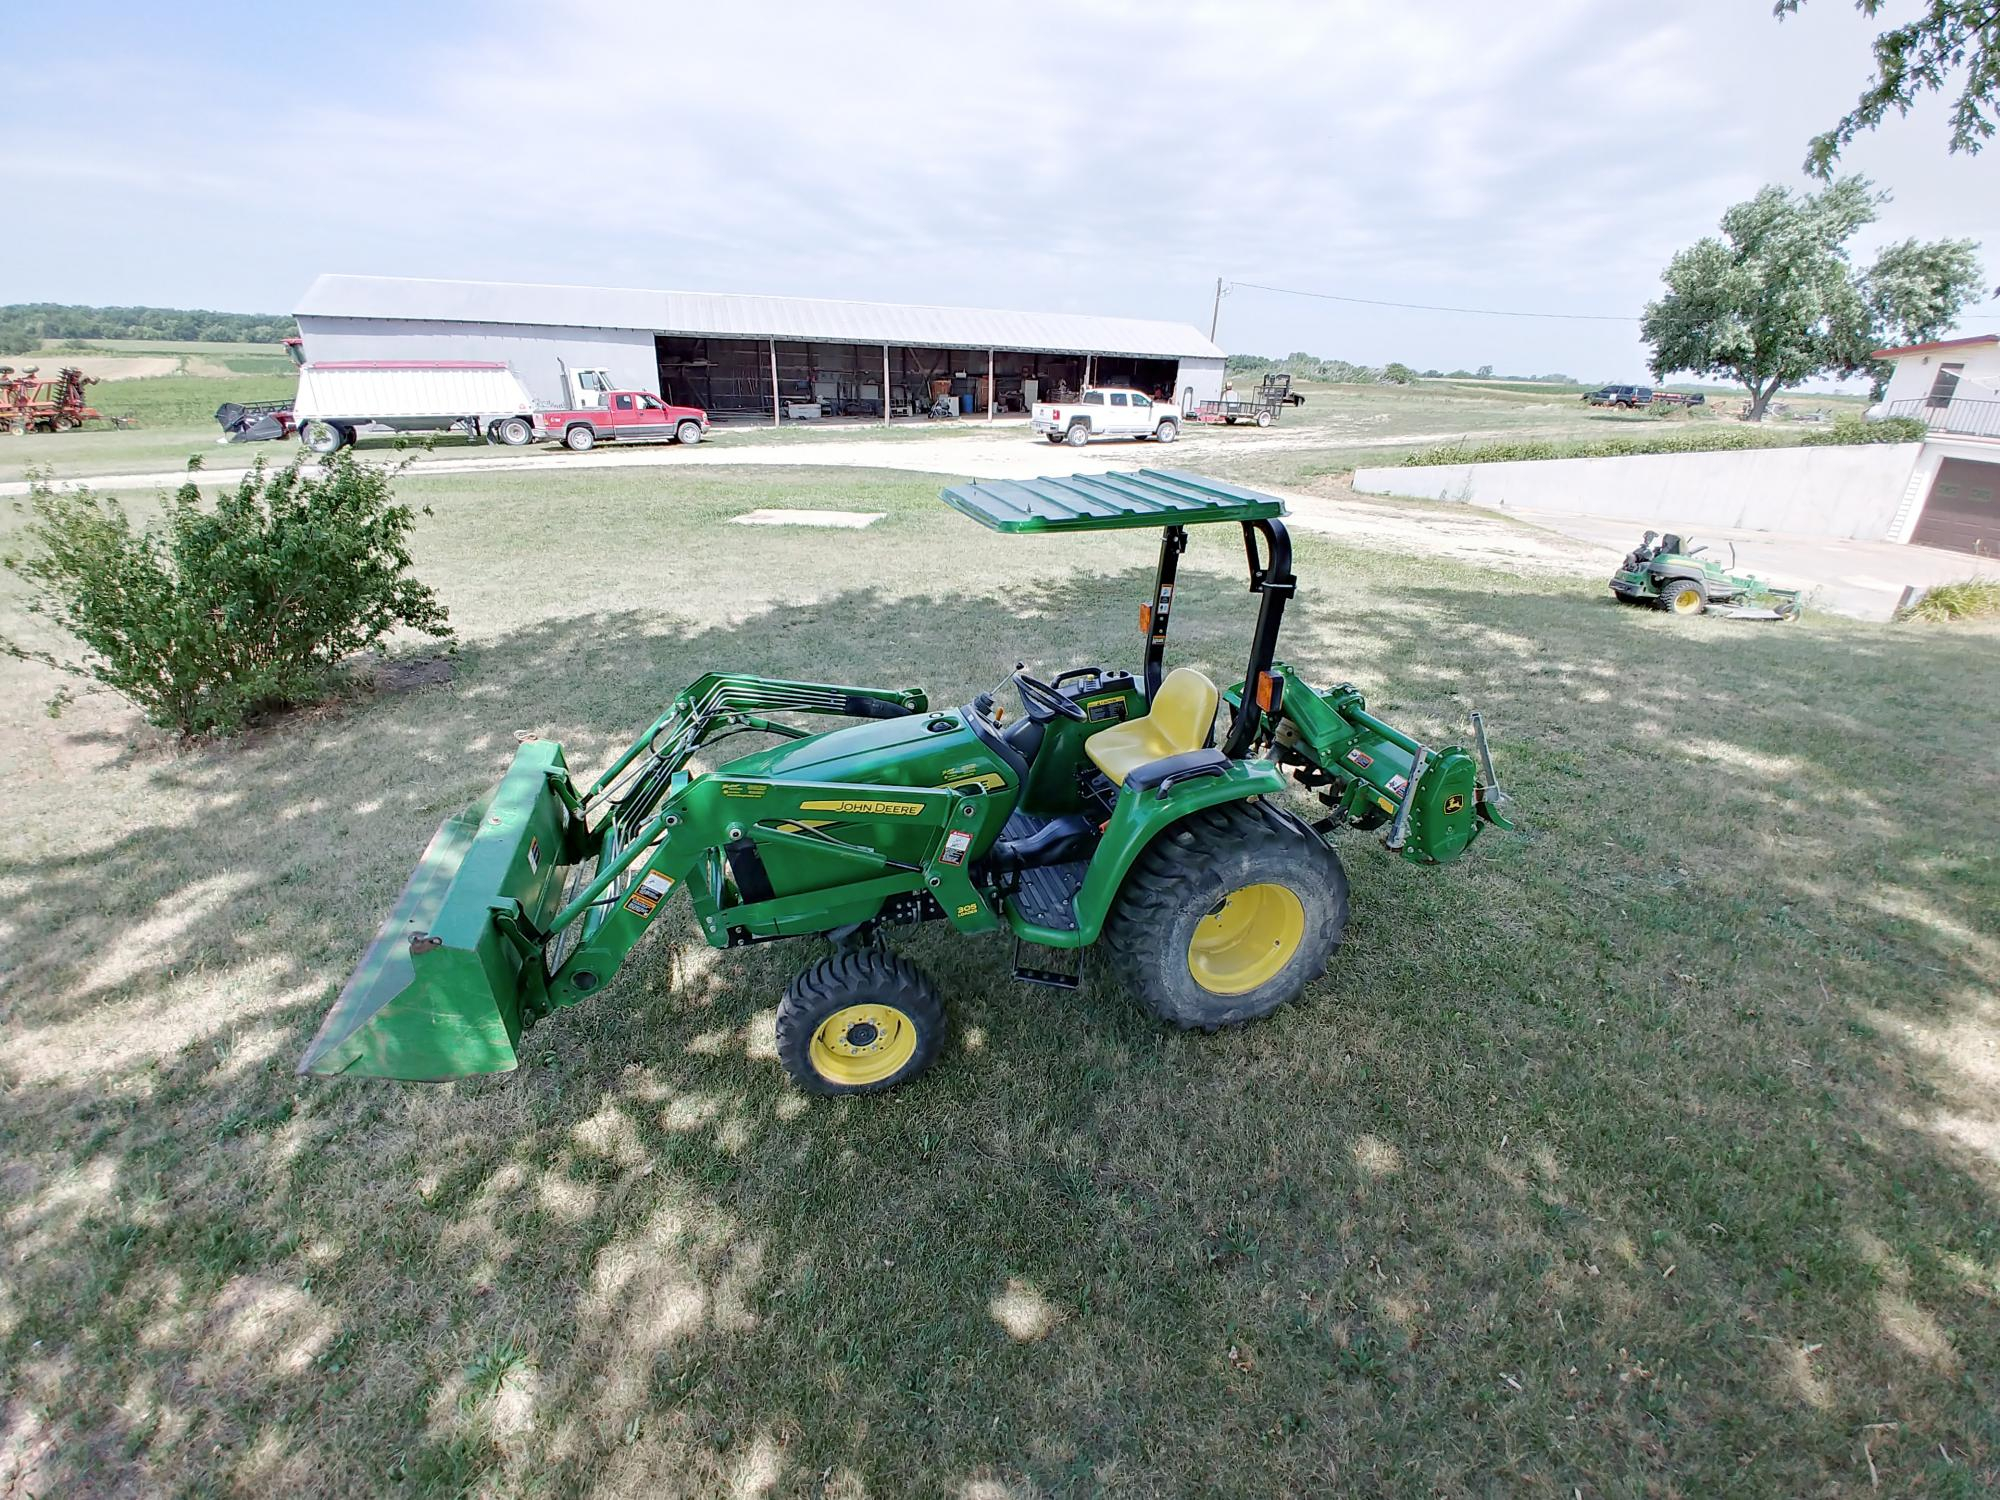 John Deere Tractor with SunGuard Tractor Canopy Installed